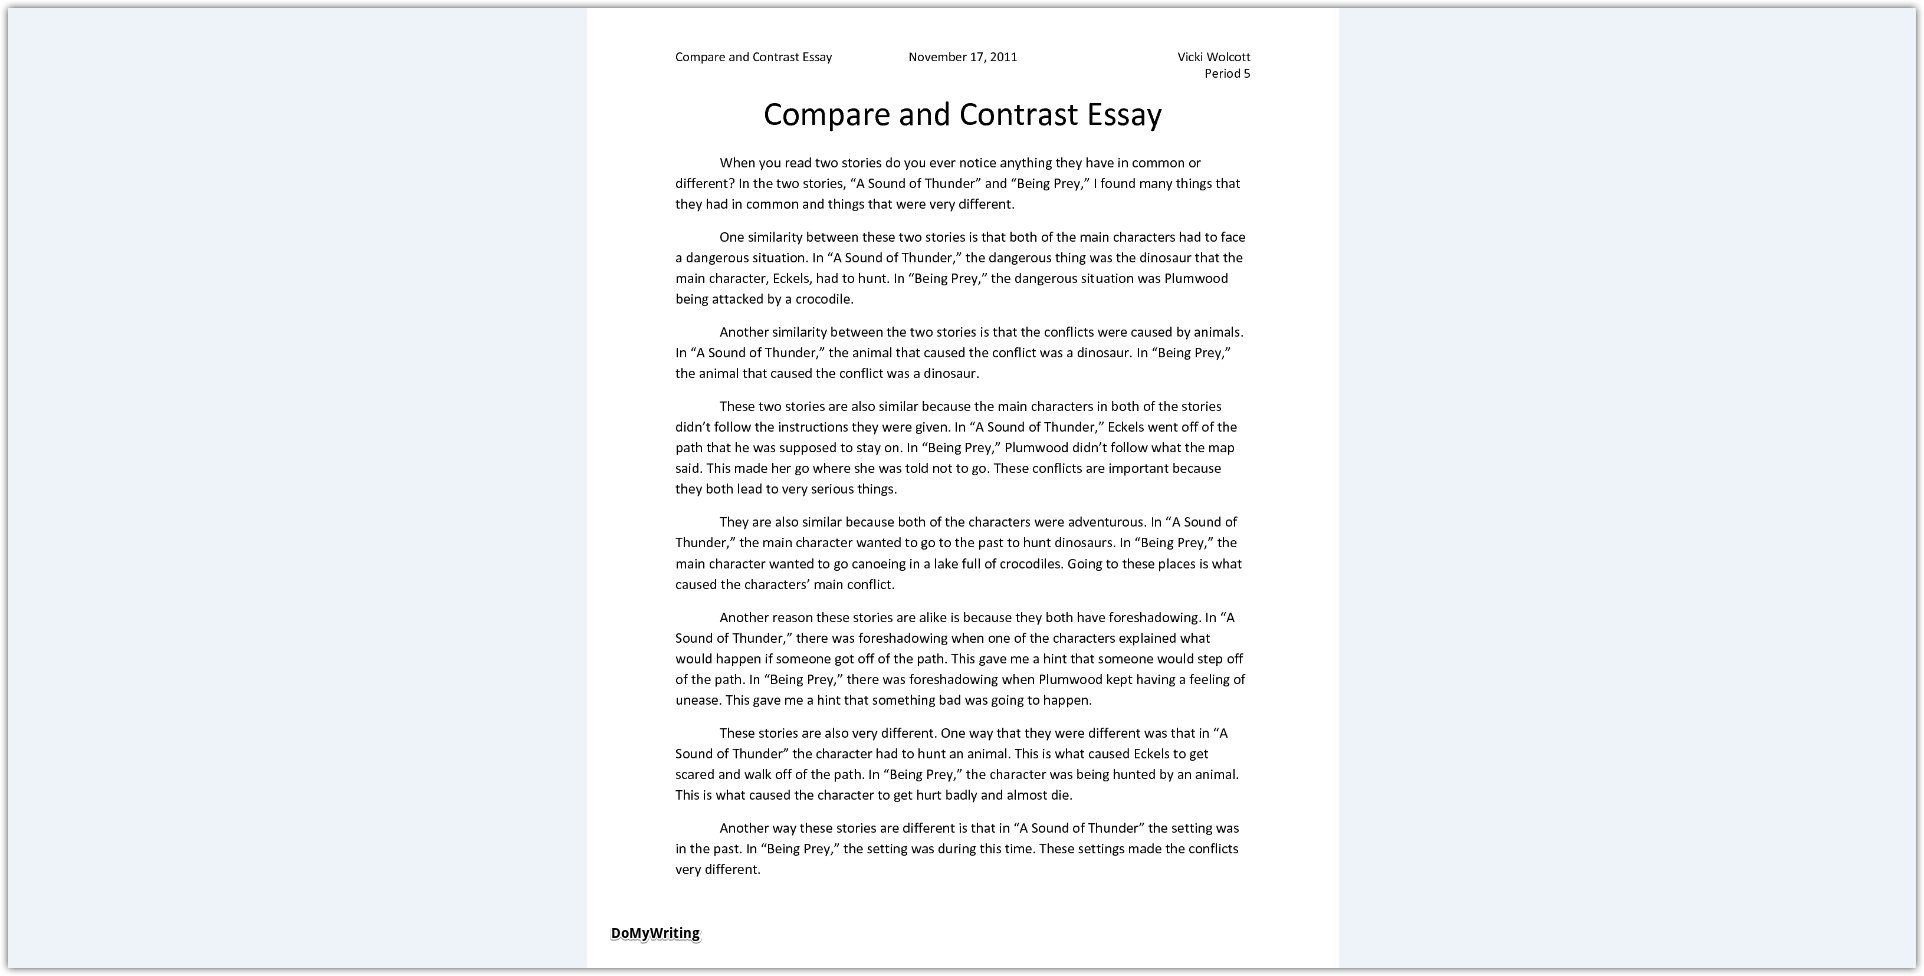 Persuasive Essays For High School  How To Start A Business Essay also Examples Of A Thesis Statement For A Narrative Essay Guided Writing A Winning Compare And Contrast Essay An Essay About Health